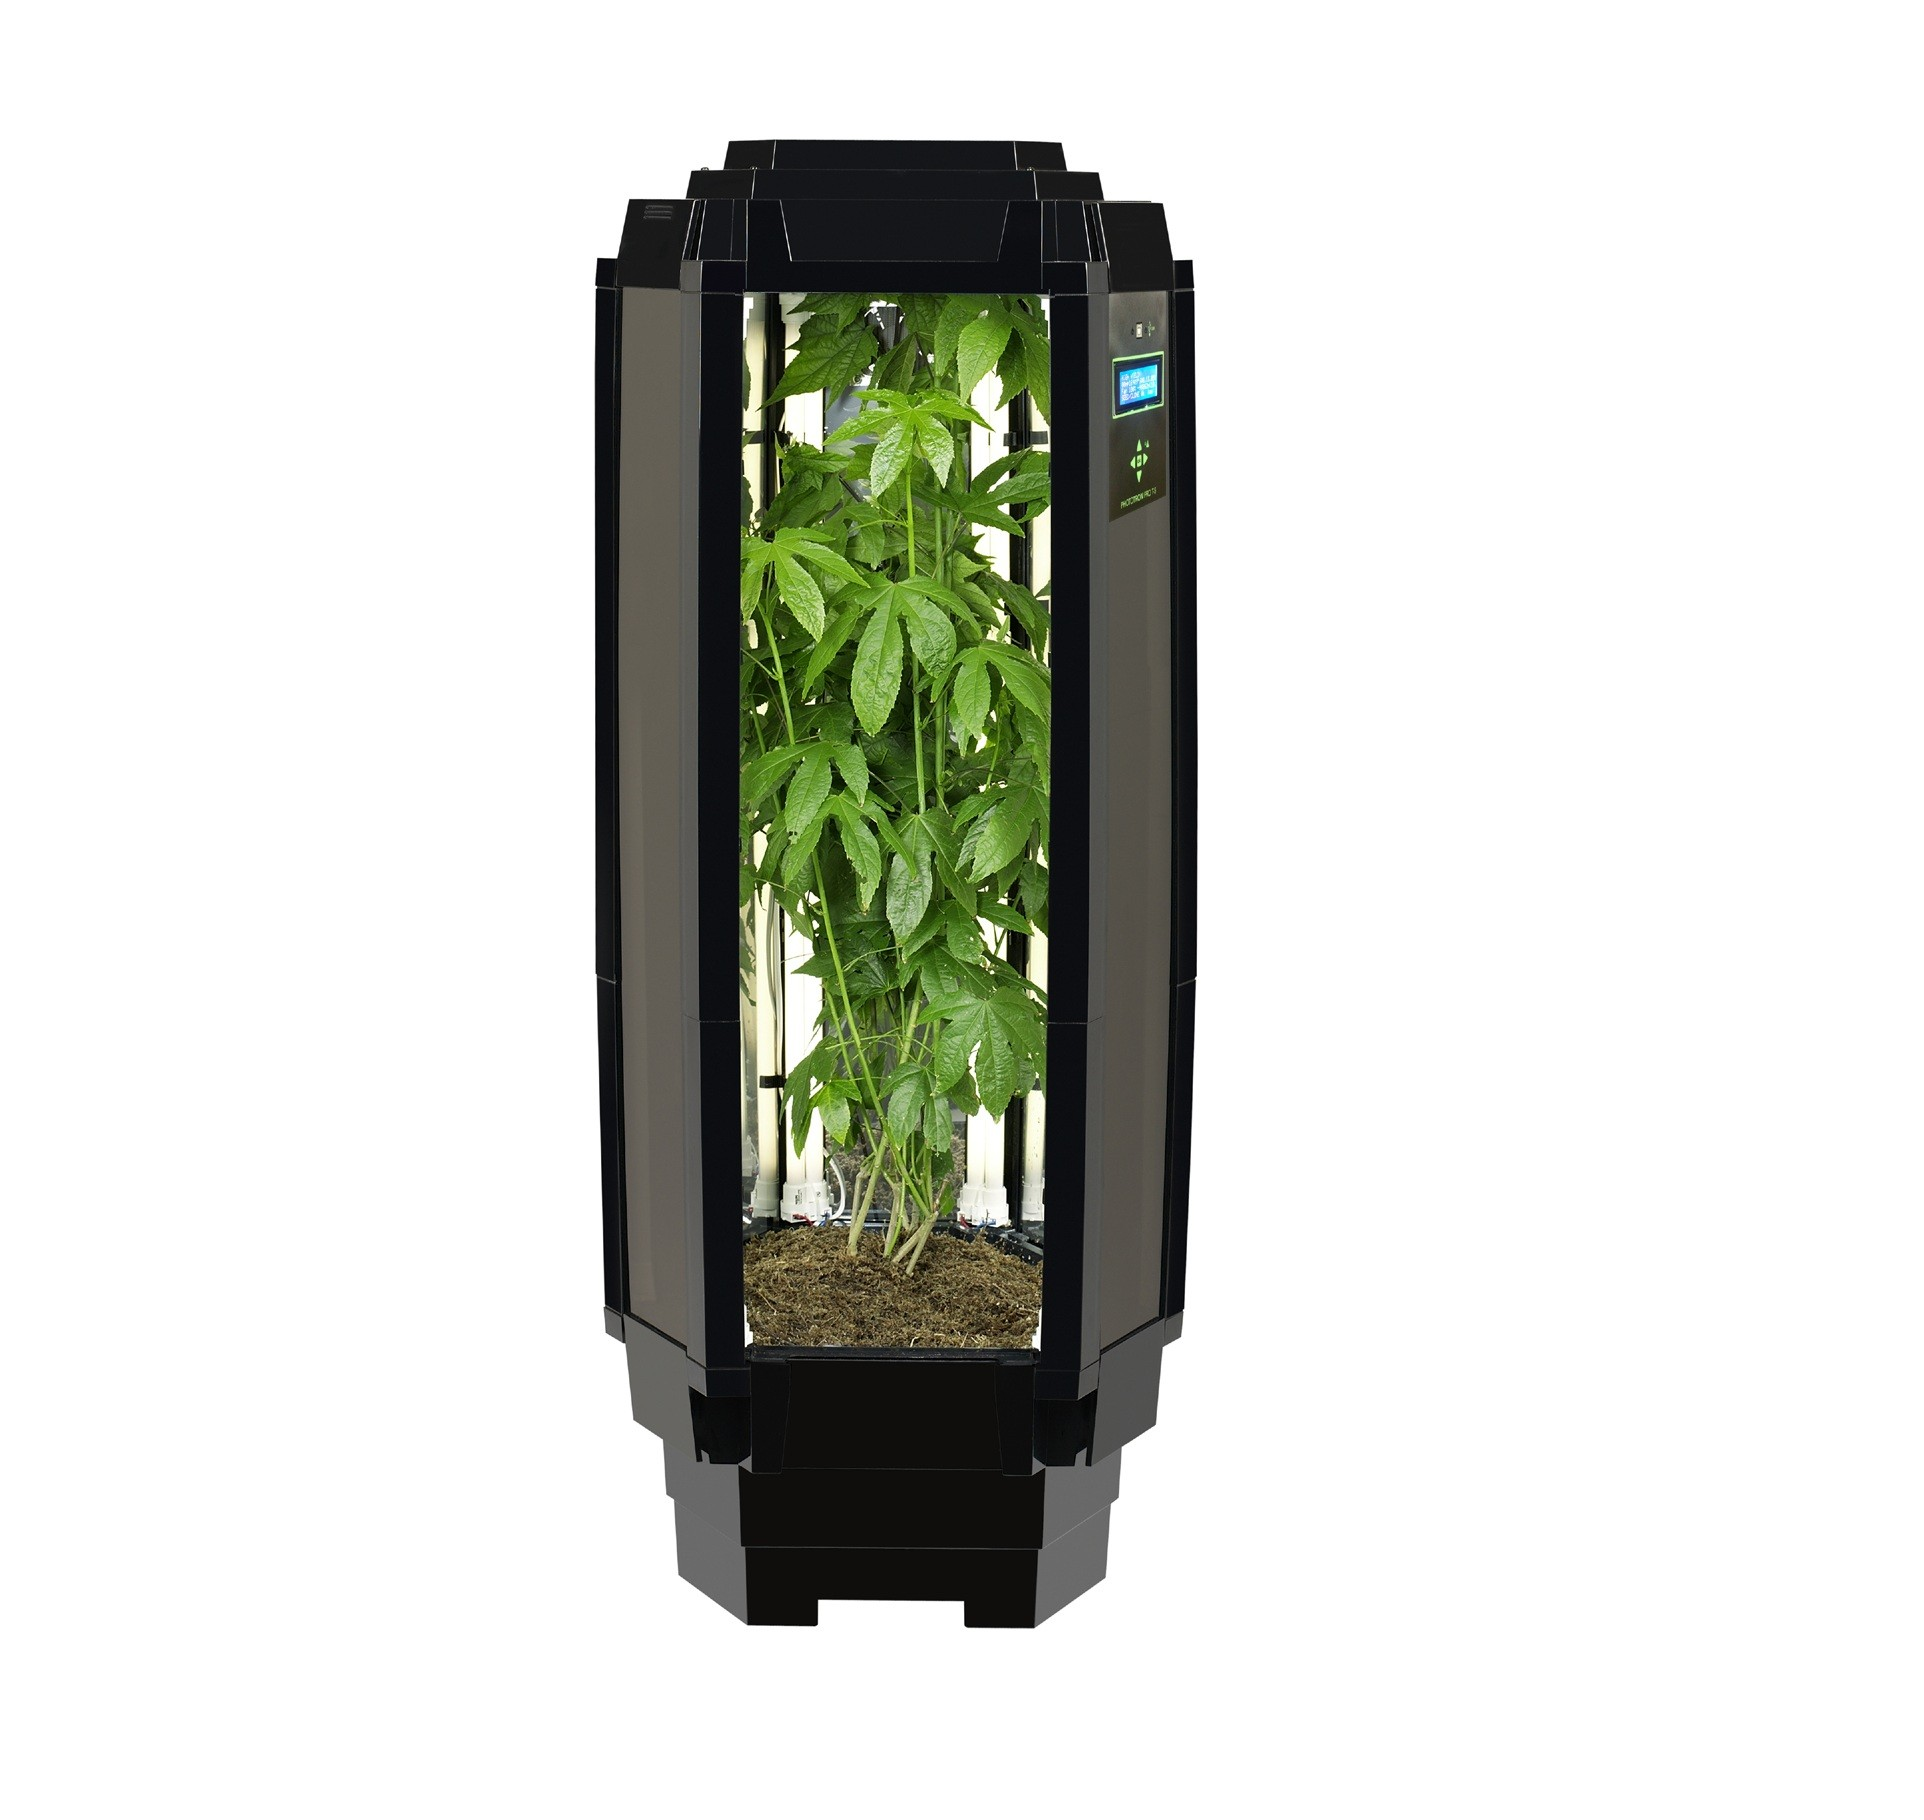 Hydroponic And Led Grow Lights  newhairstylesformen2014.com